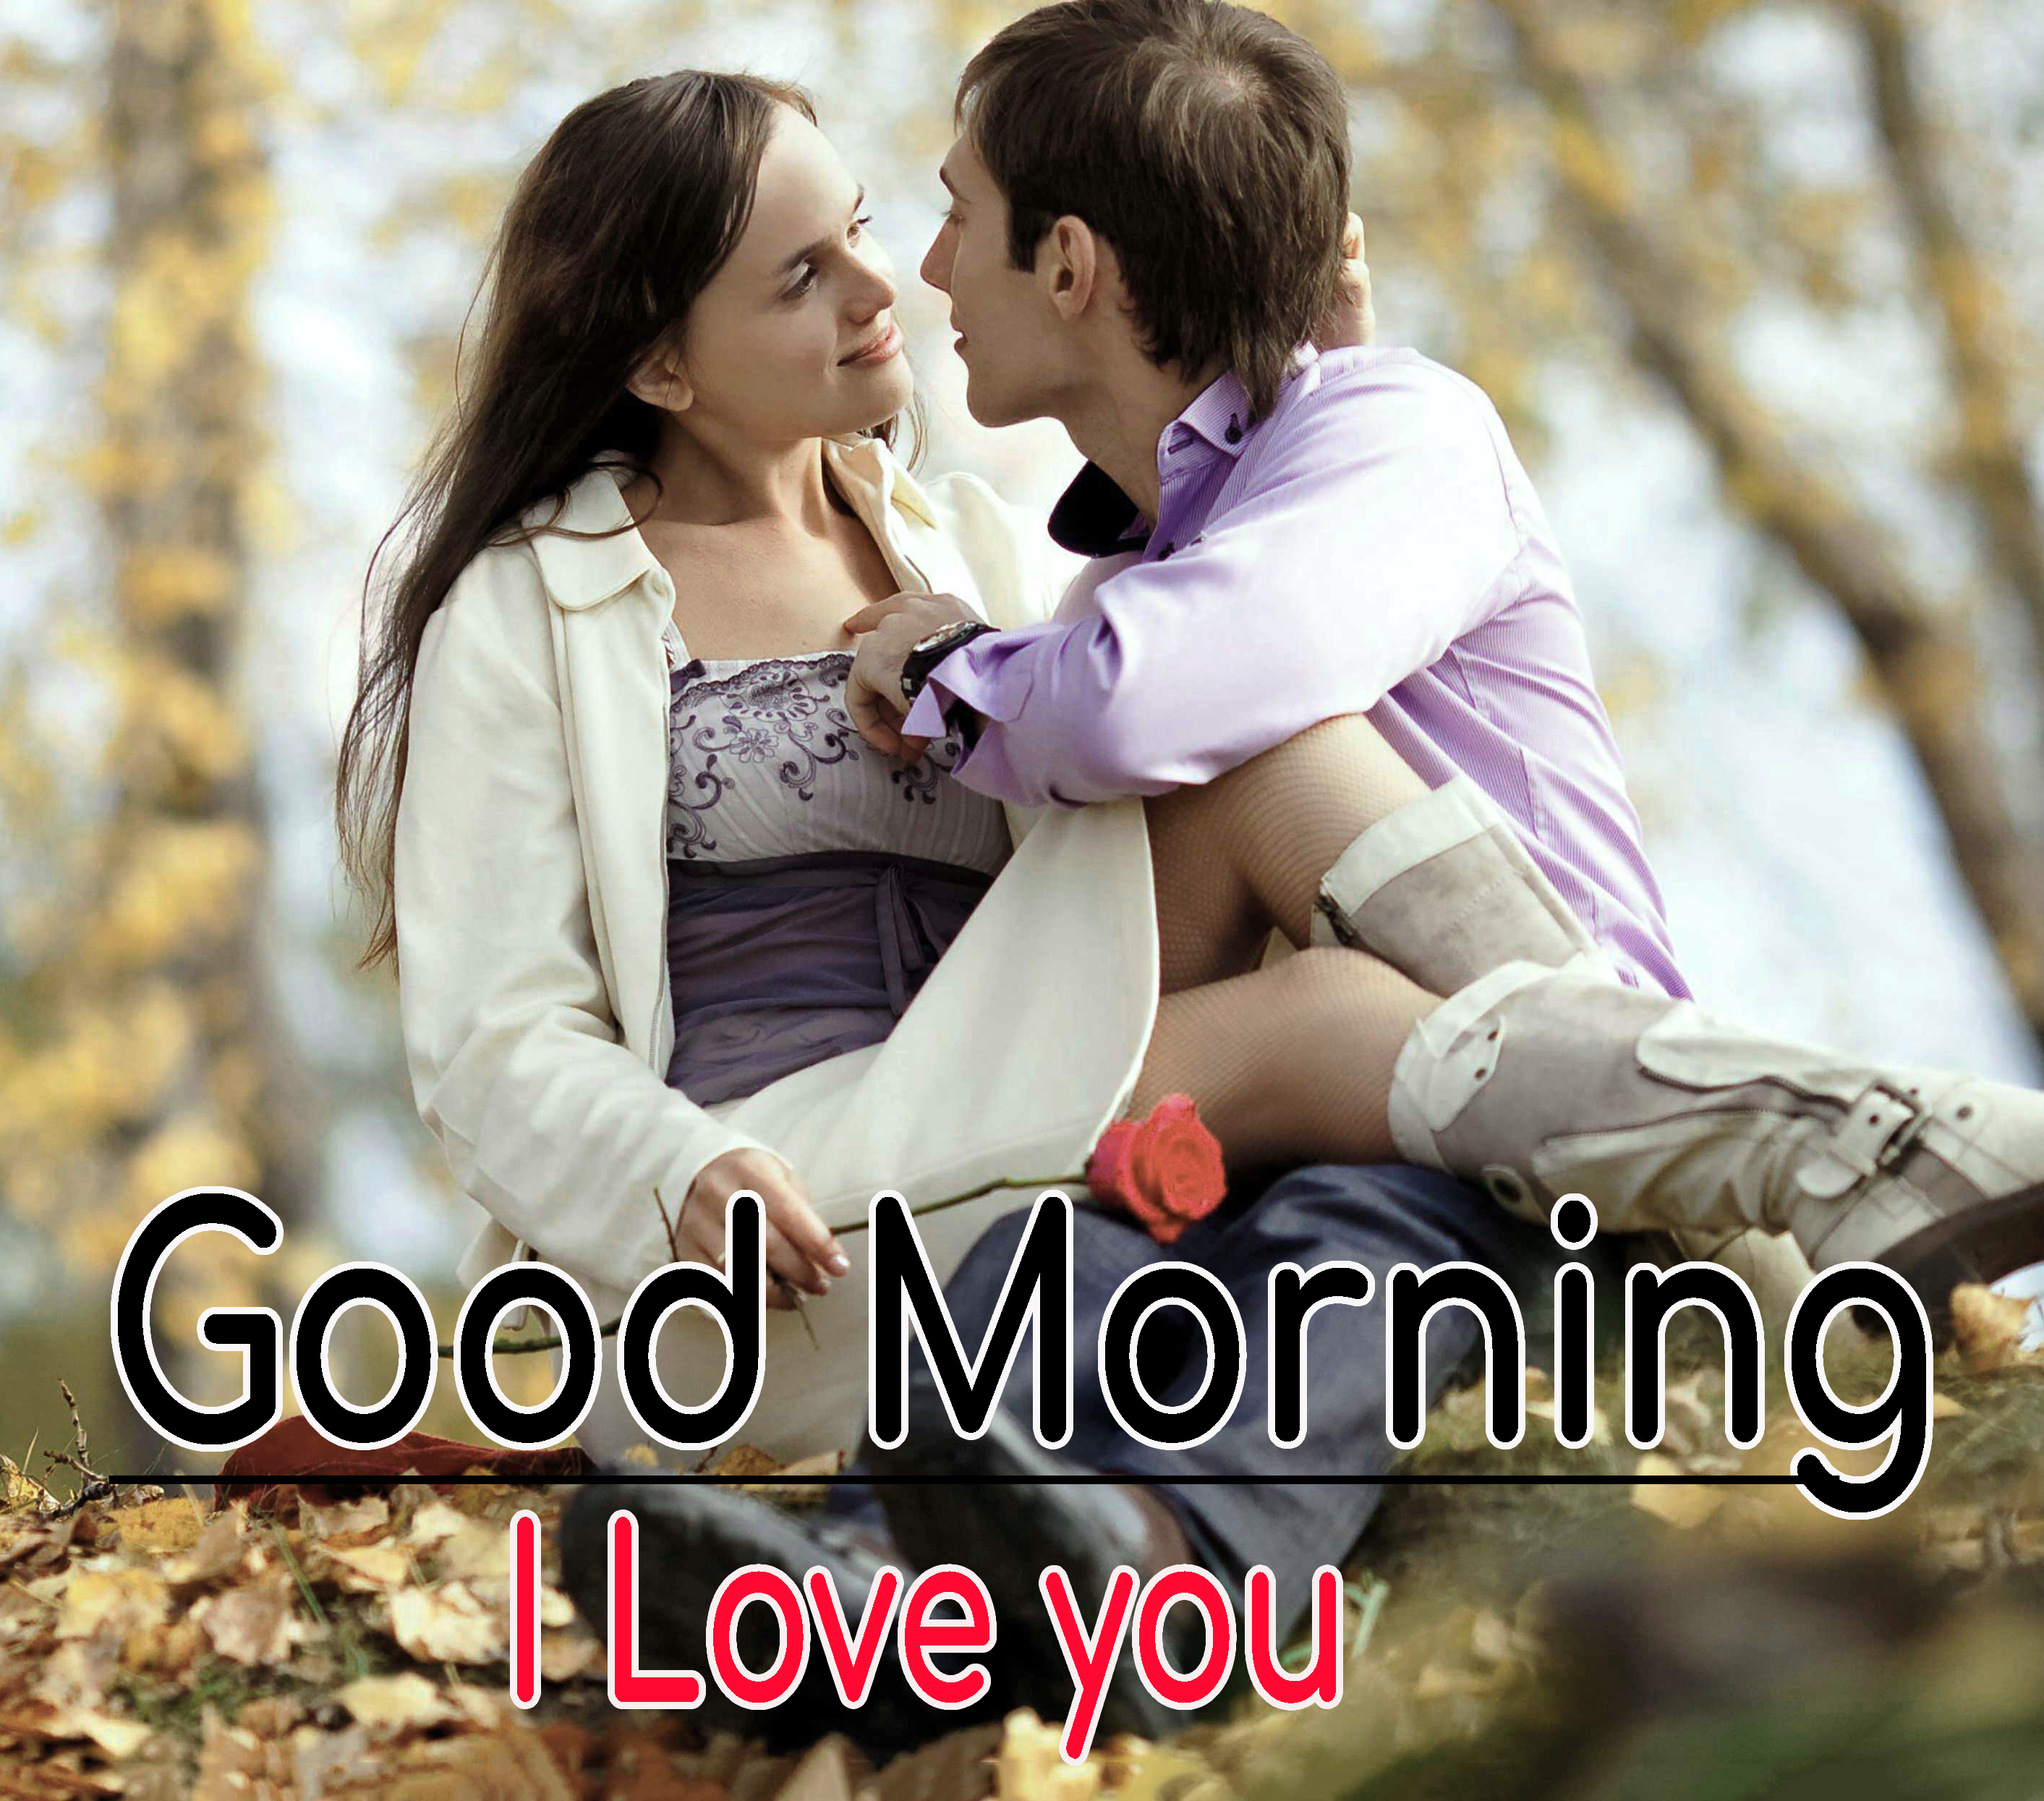 Lover Good Morning Images 16